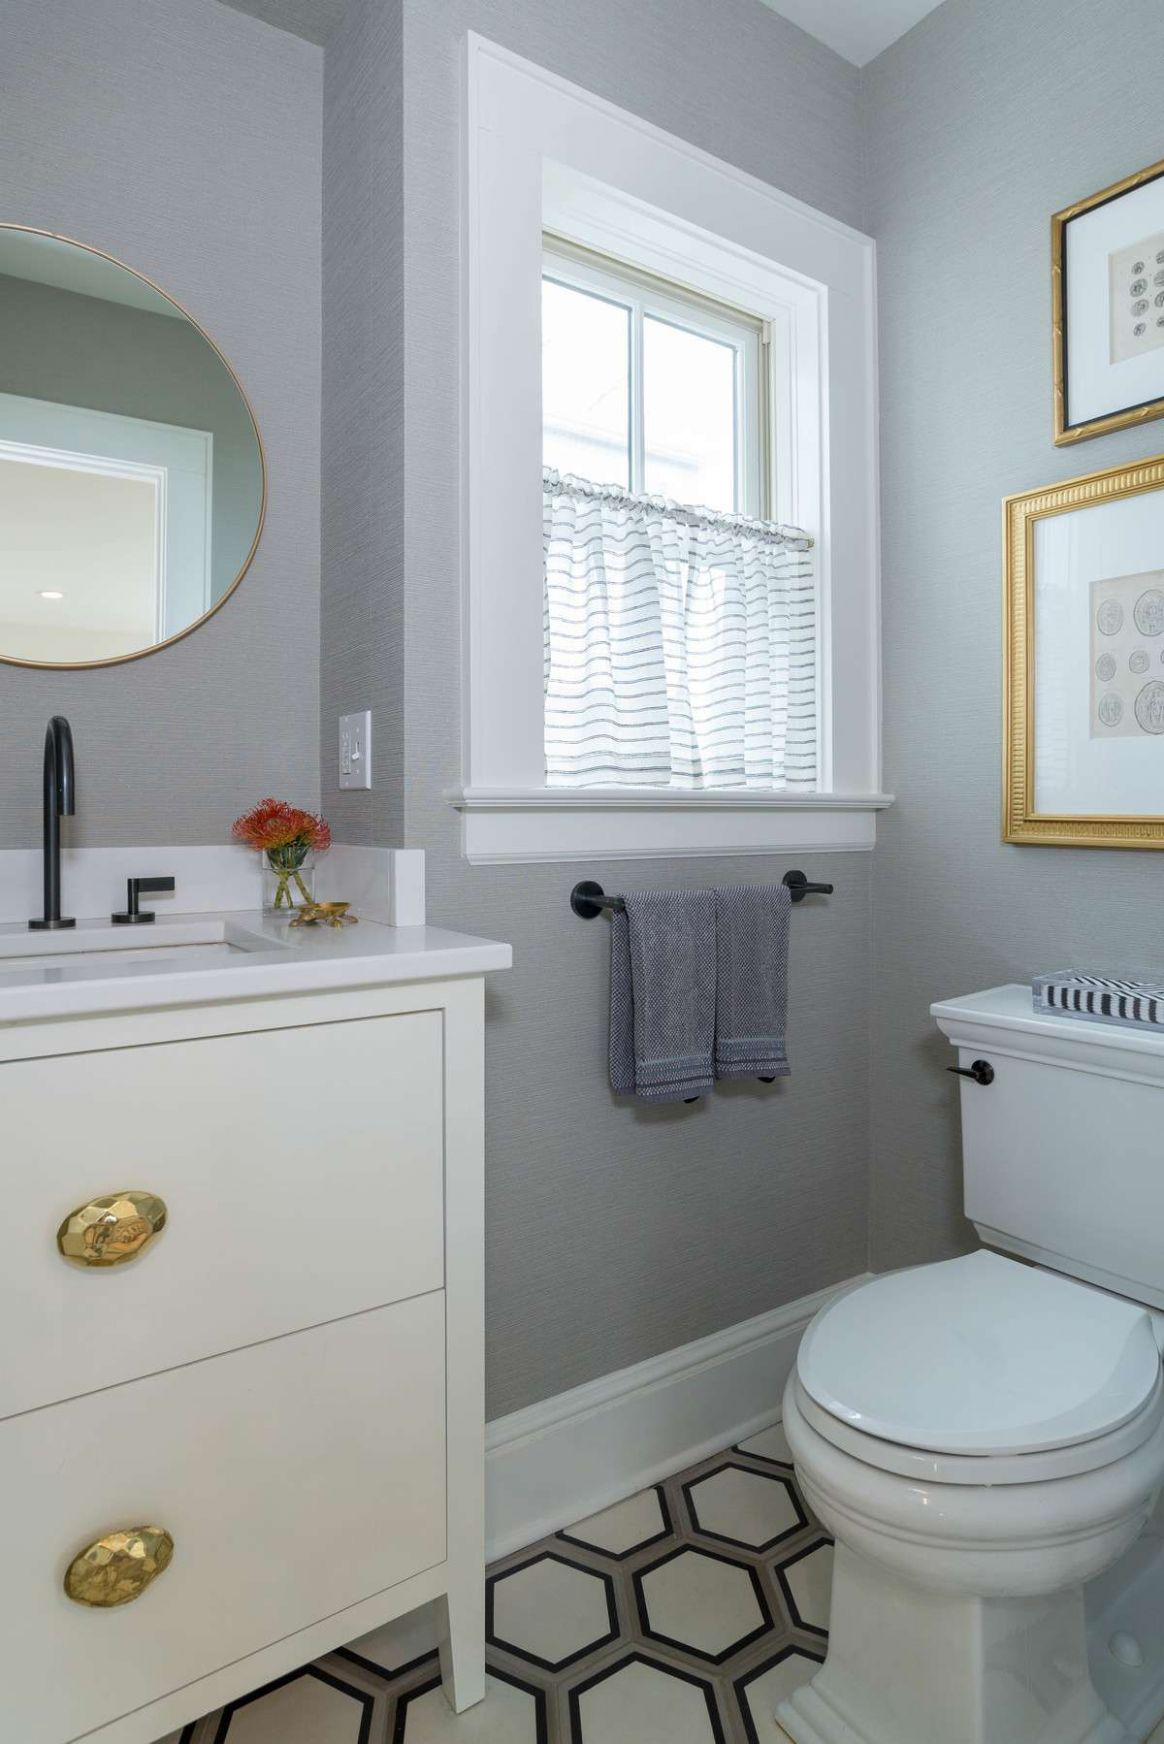 Small Bathrooms Brimming With Style and Function - bathroom ideas pictures